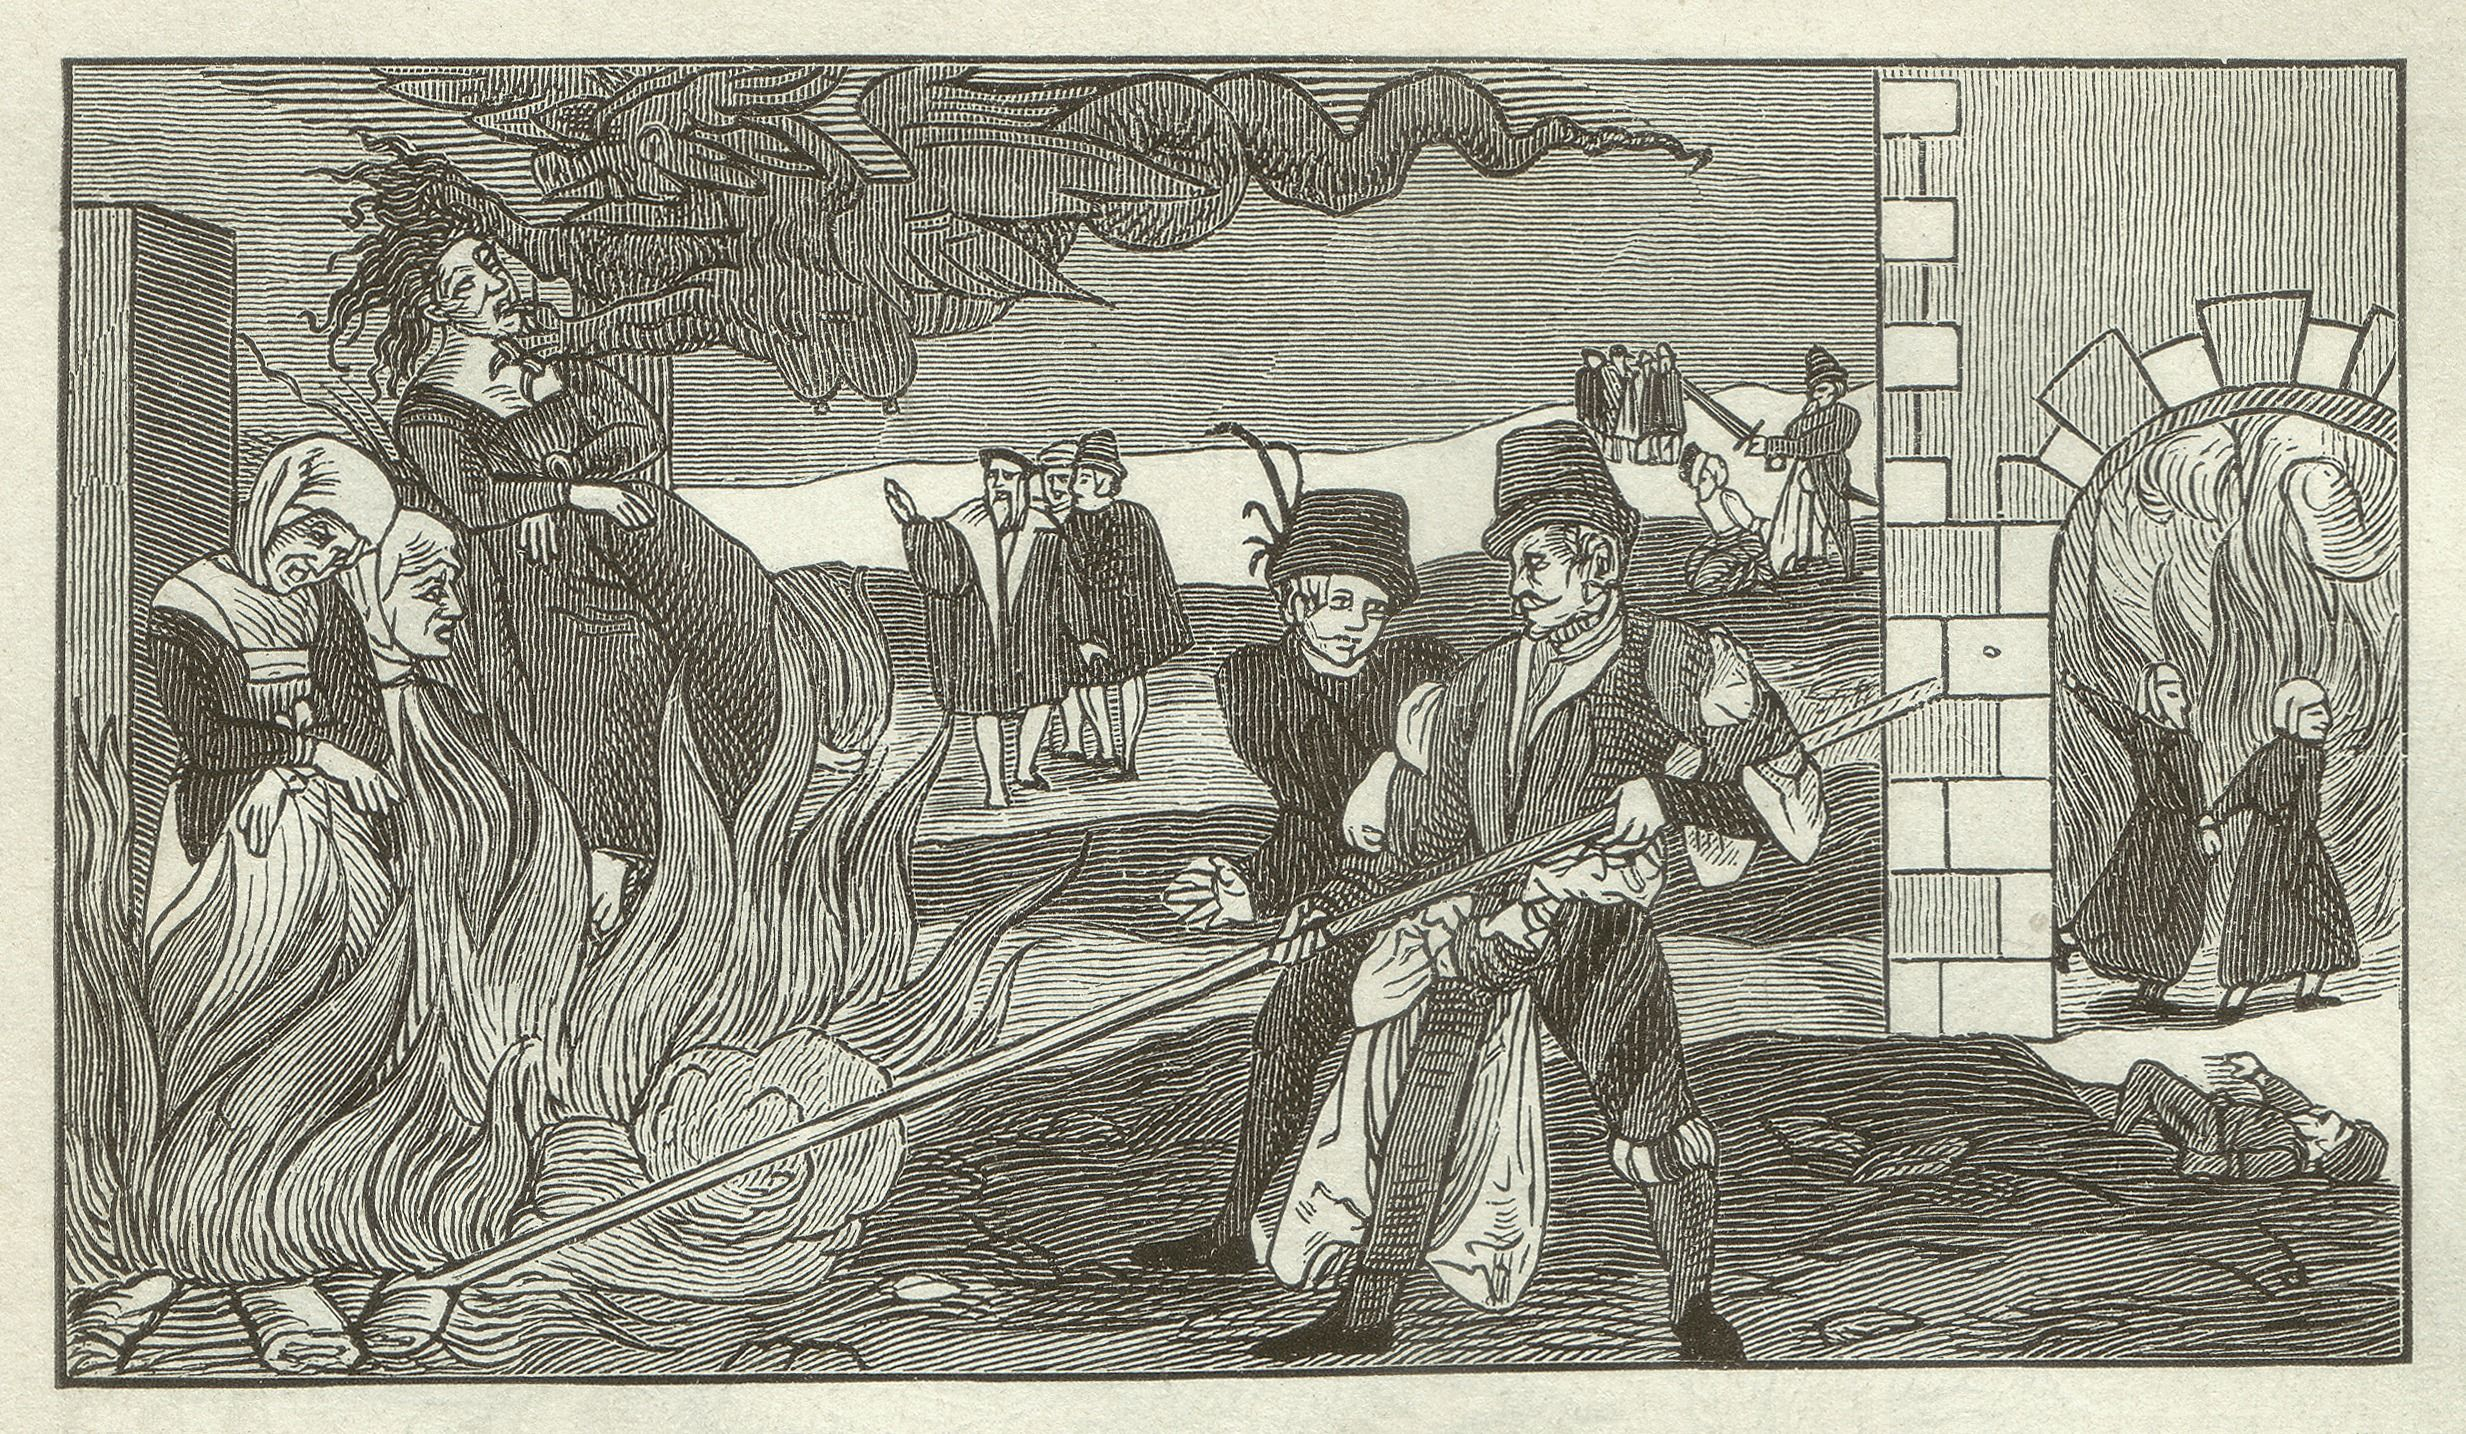 A witch-burning in the county of Regenstein, 1550